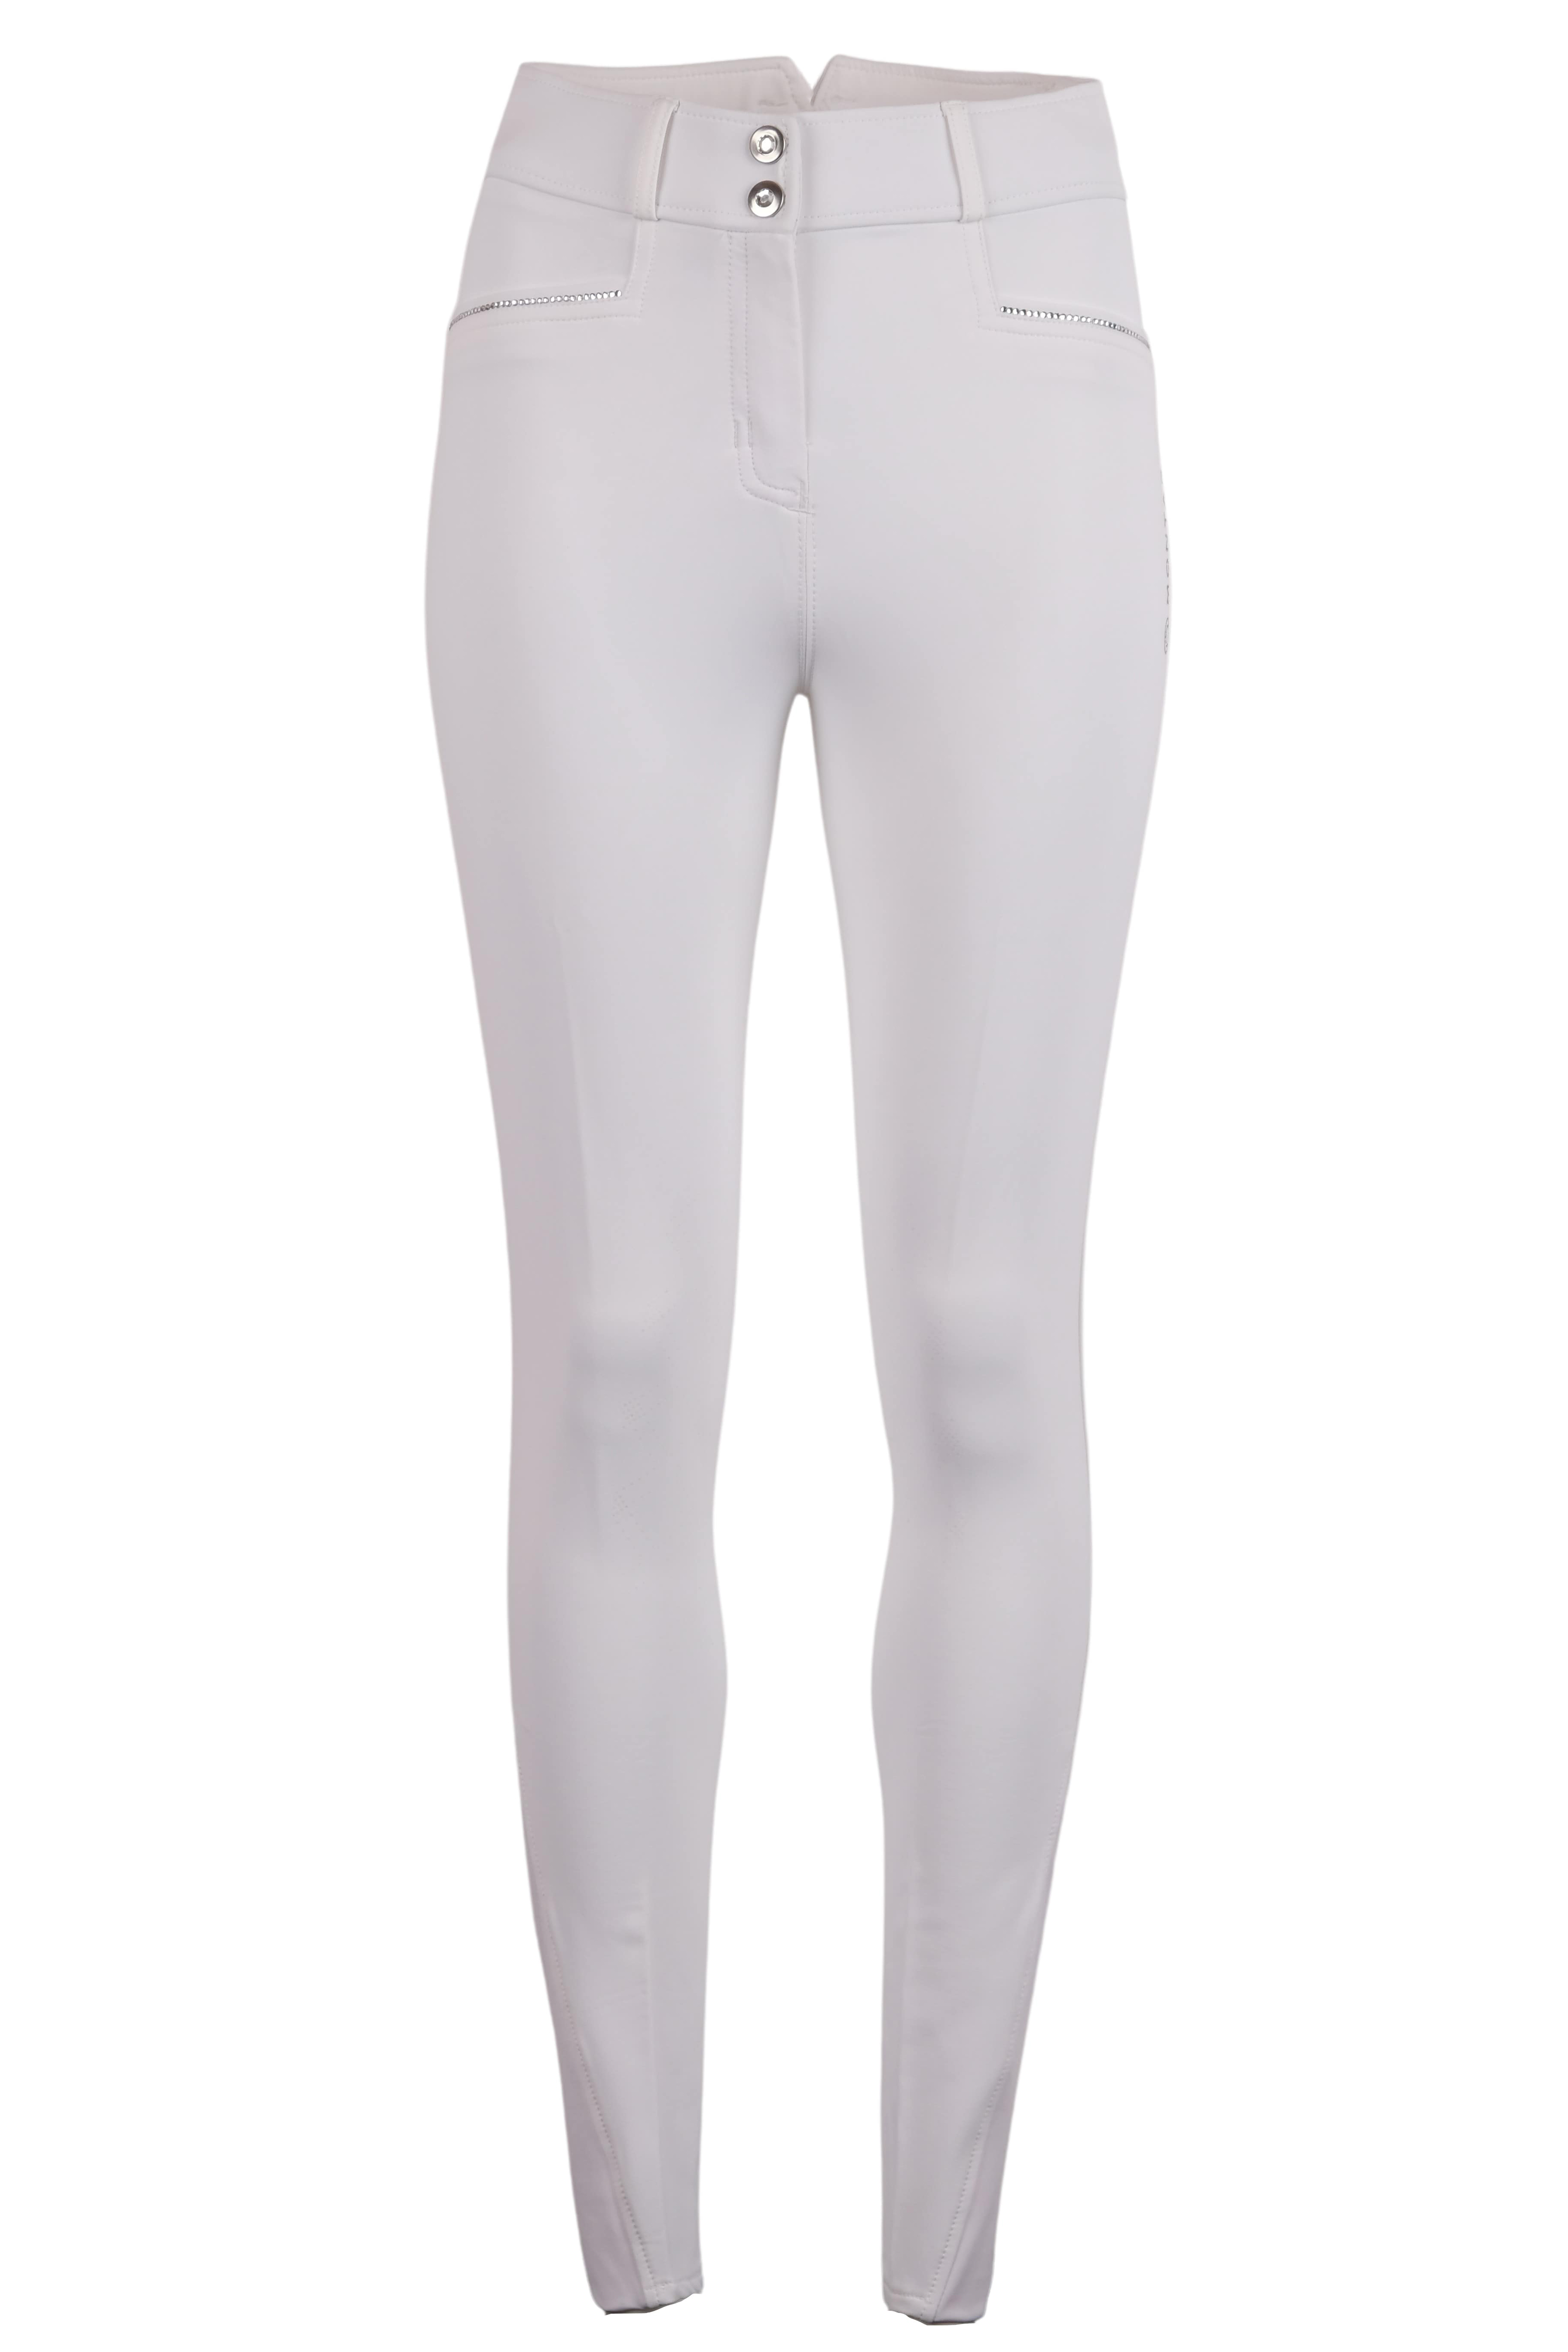 21110-11_Romy_Crystal_Lines_Breeches_White_Kneegrip_Front2.jpg